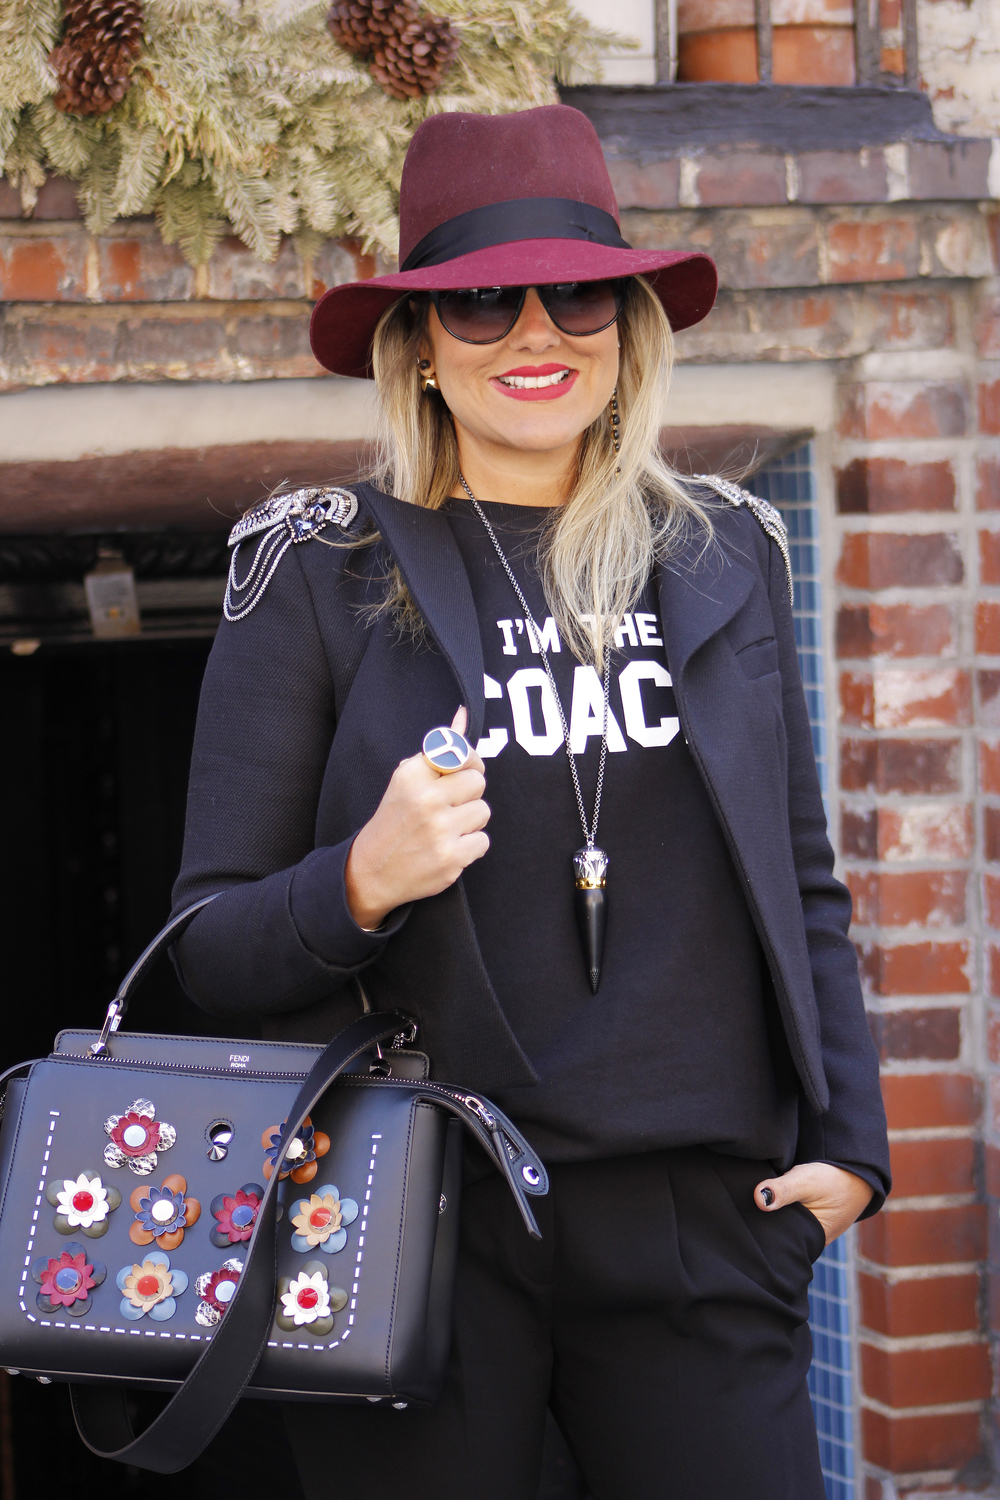 Coach of my life - Blogzilla NYC